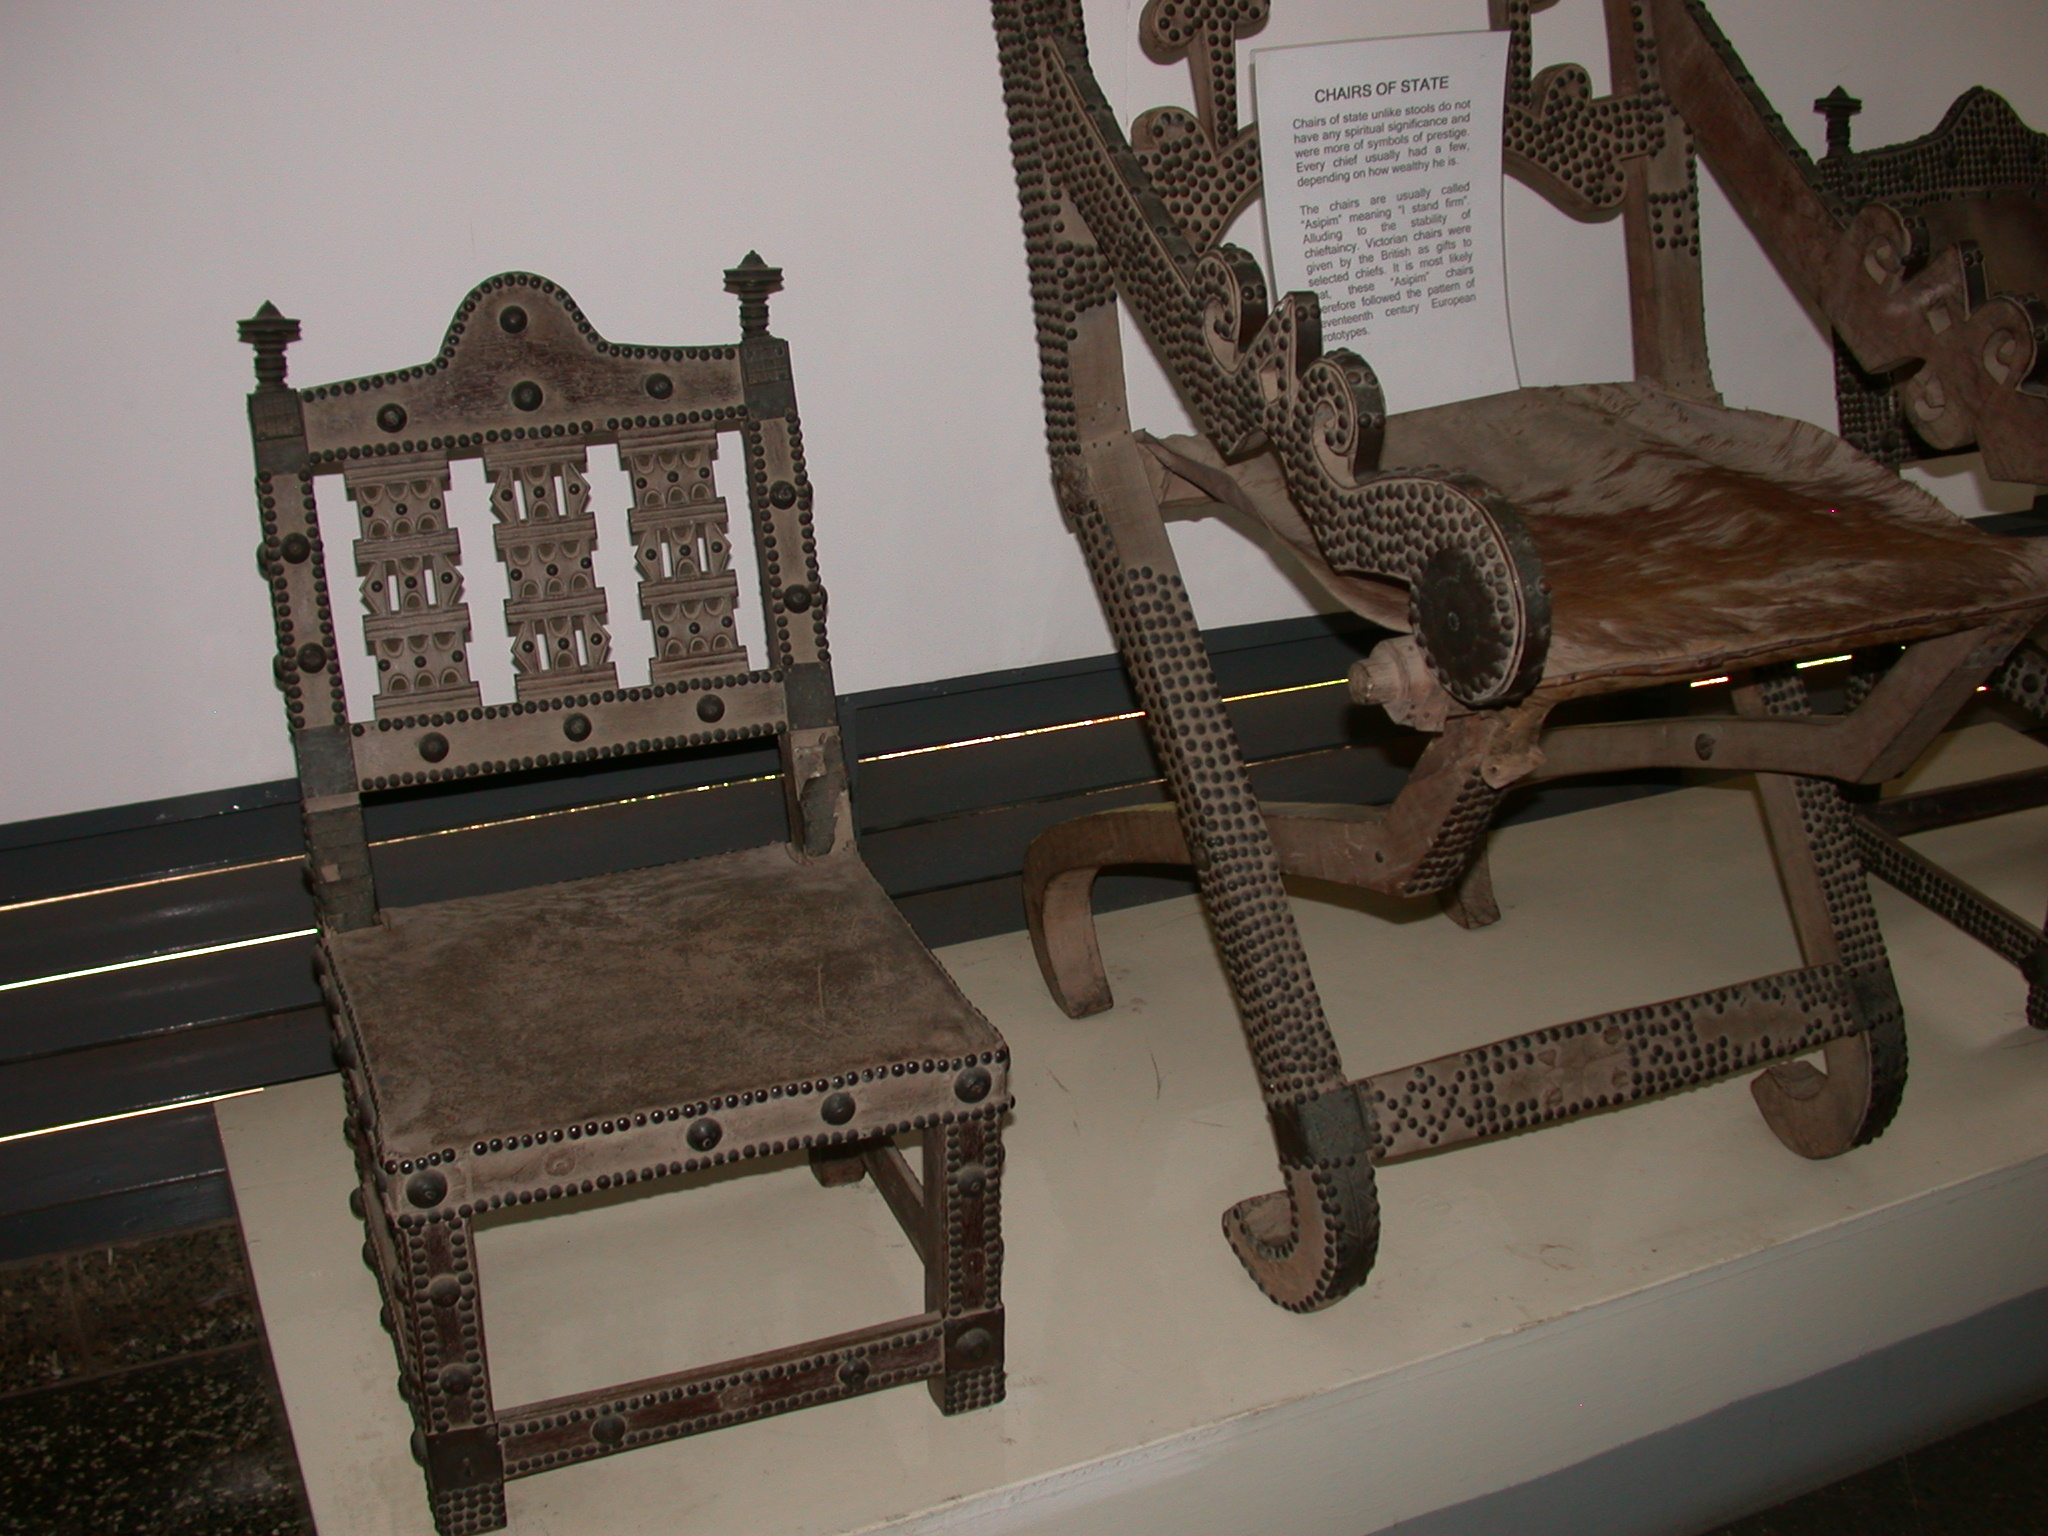 Chairs of State, National Museum, Accra, Ghana